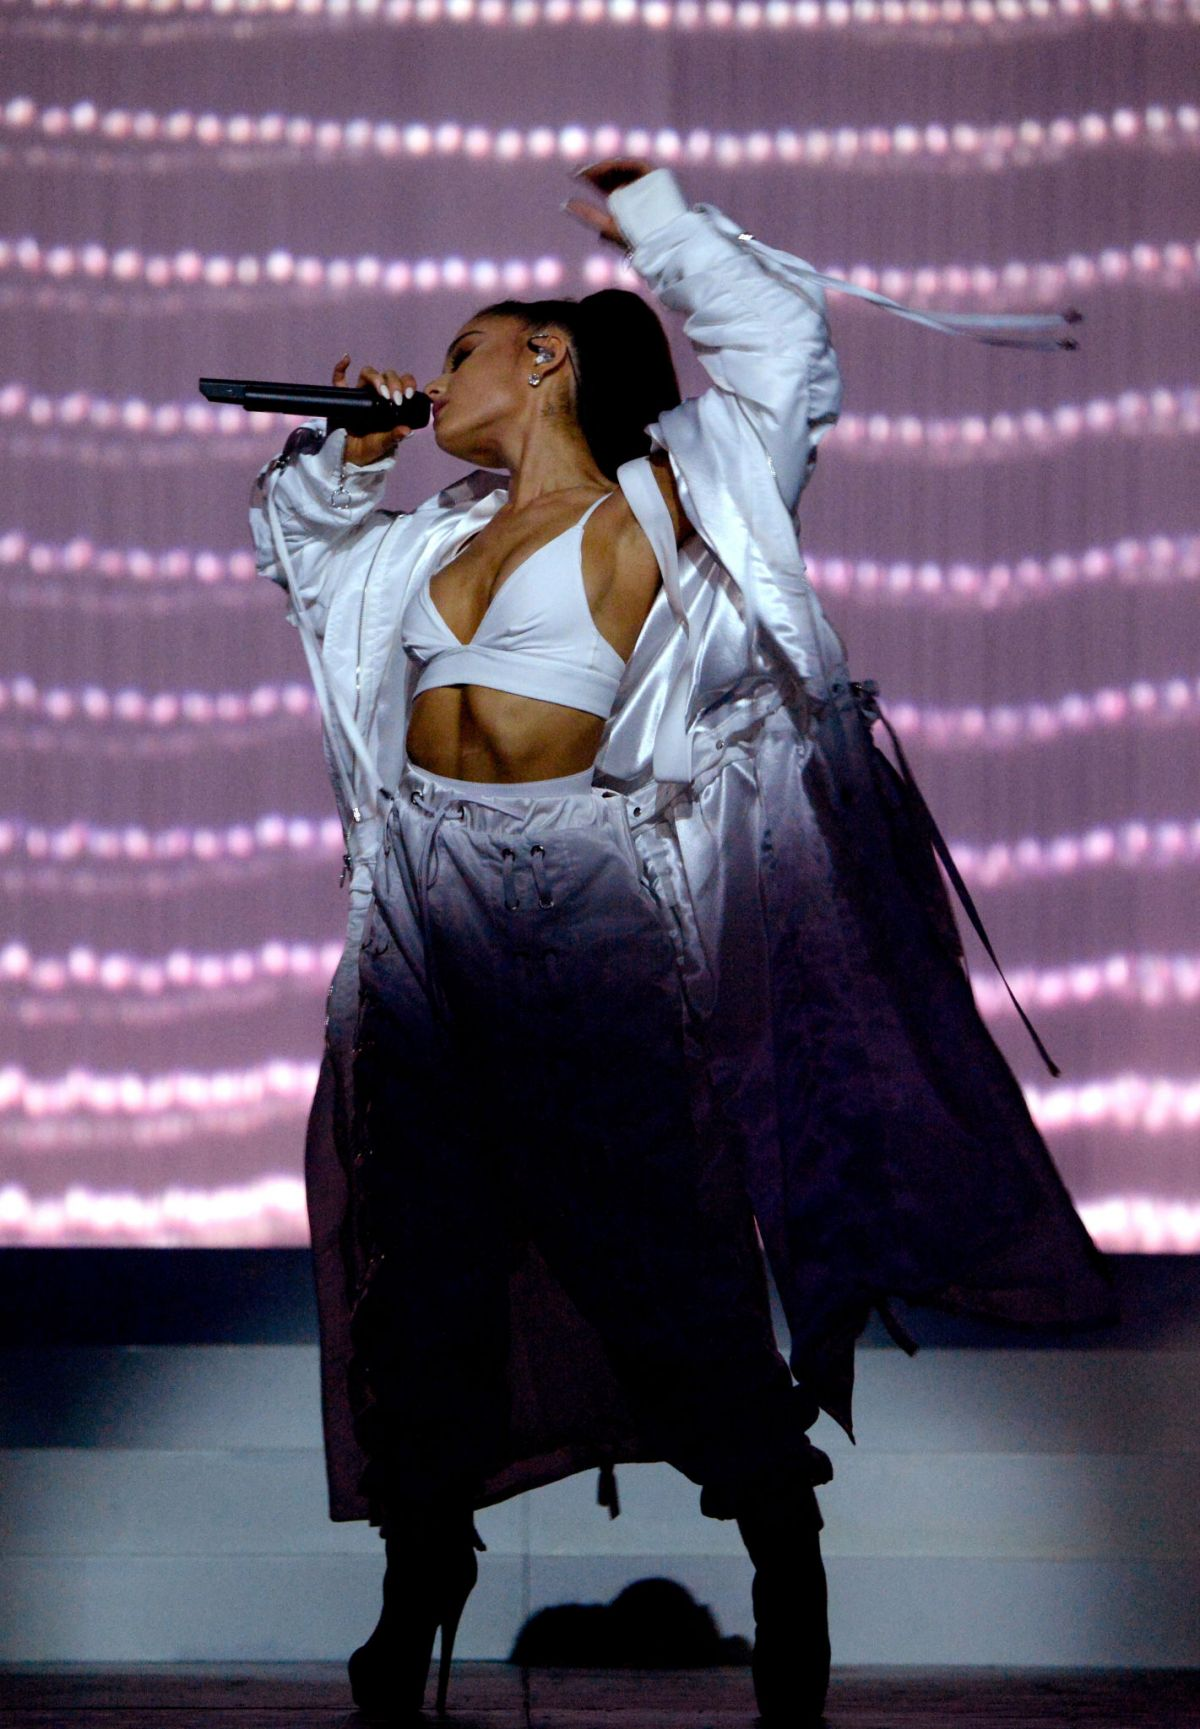 Ariana Grande Performs At Her Dangerous Woman Tour In Phoenix 02 03